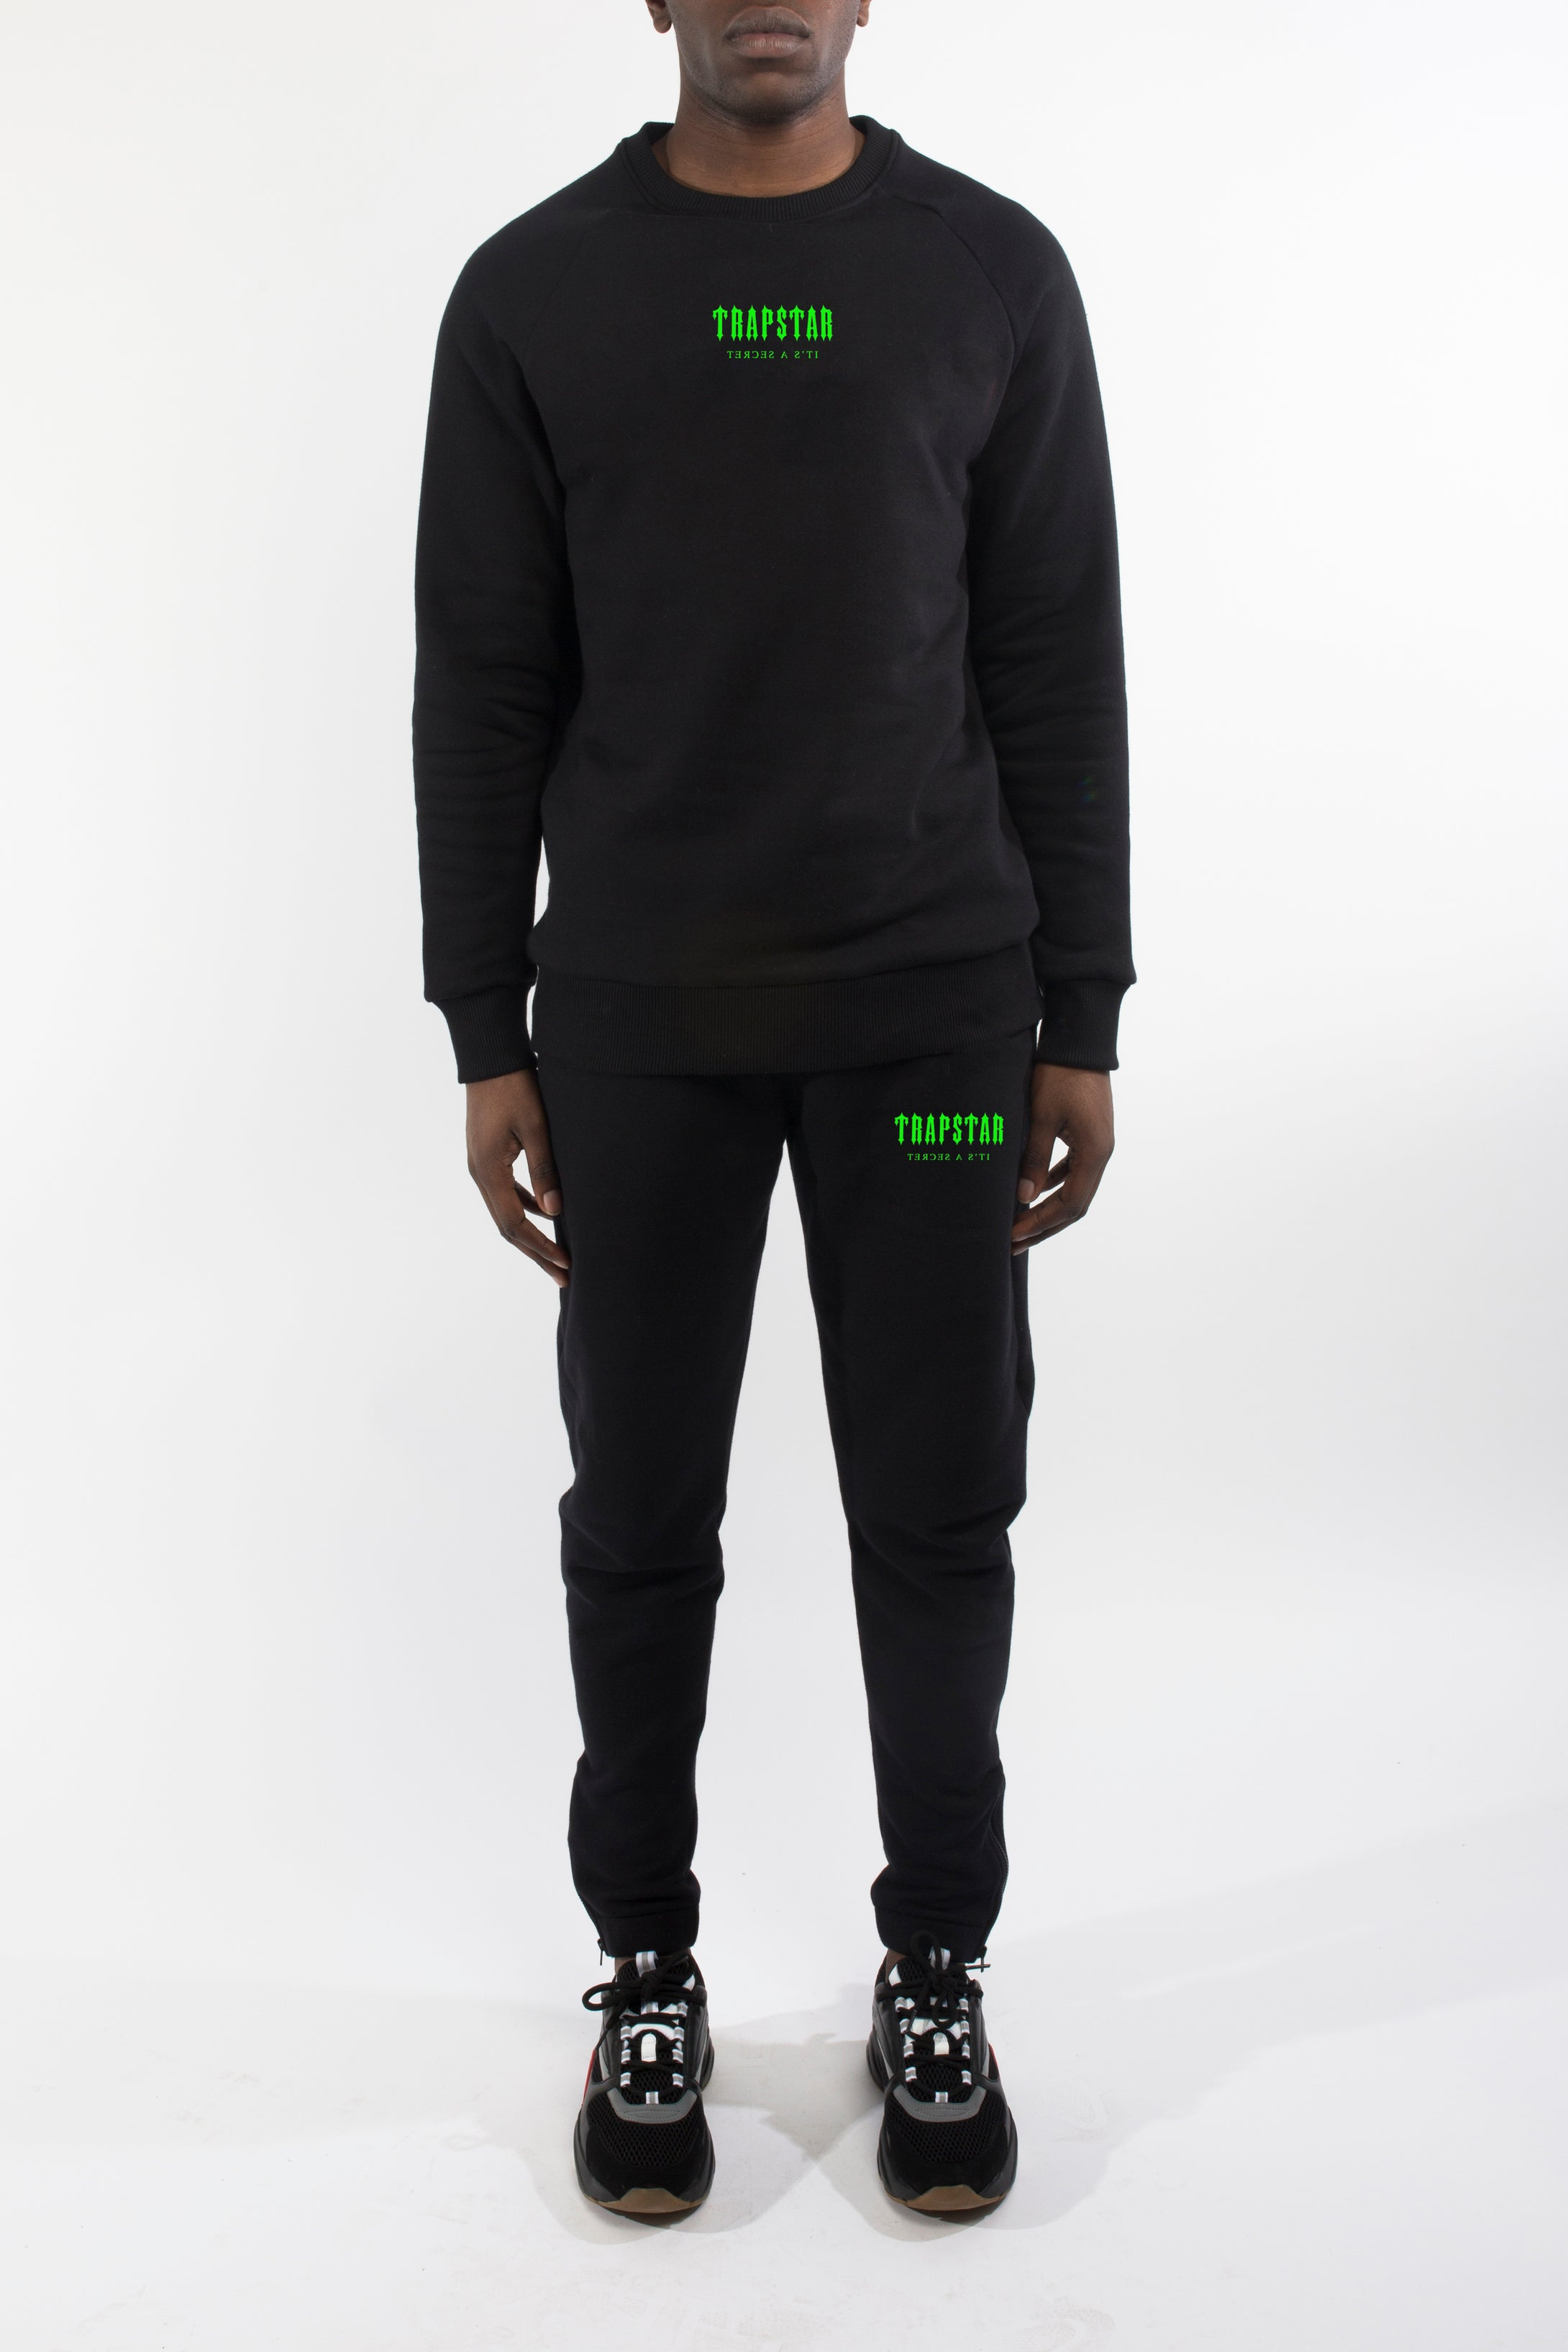 Decoded Centre Chest Crewneck Tracksuit - Black/Neon Green